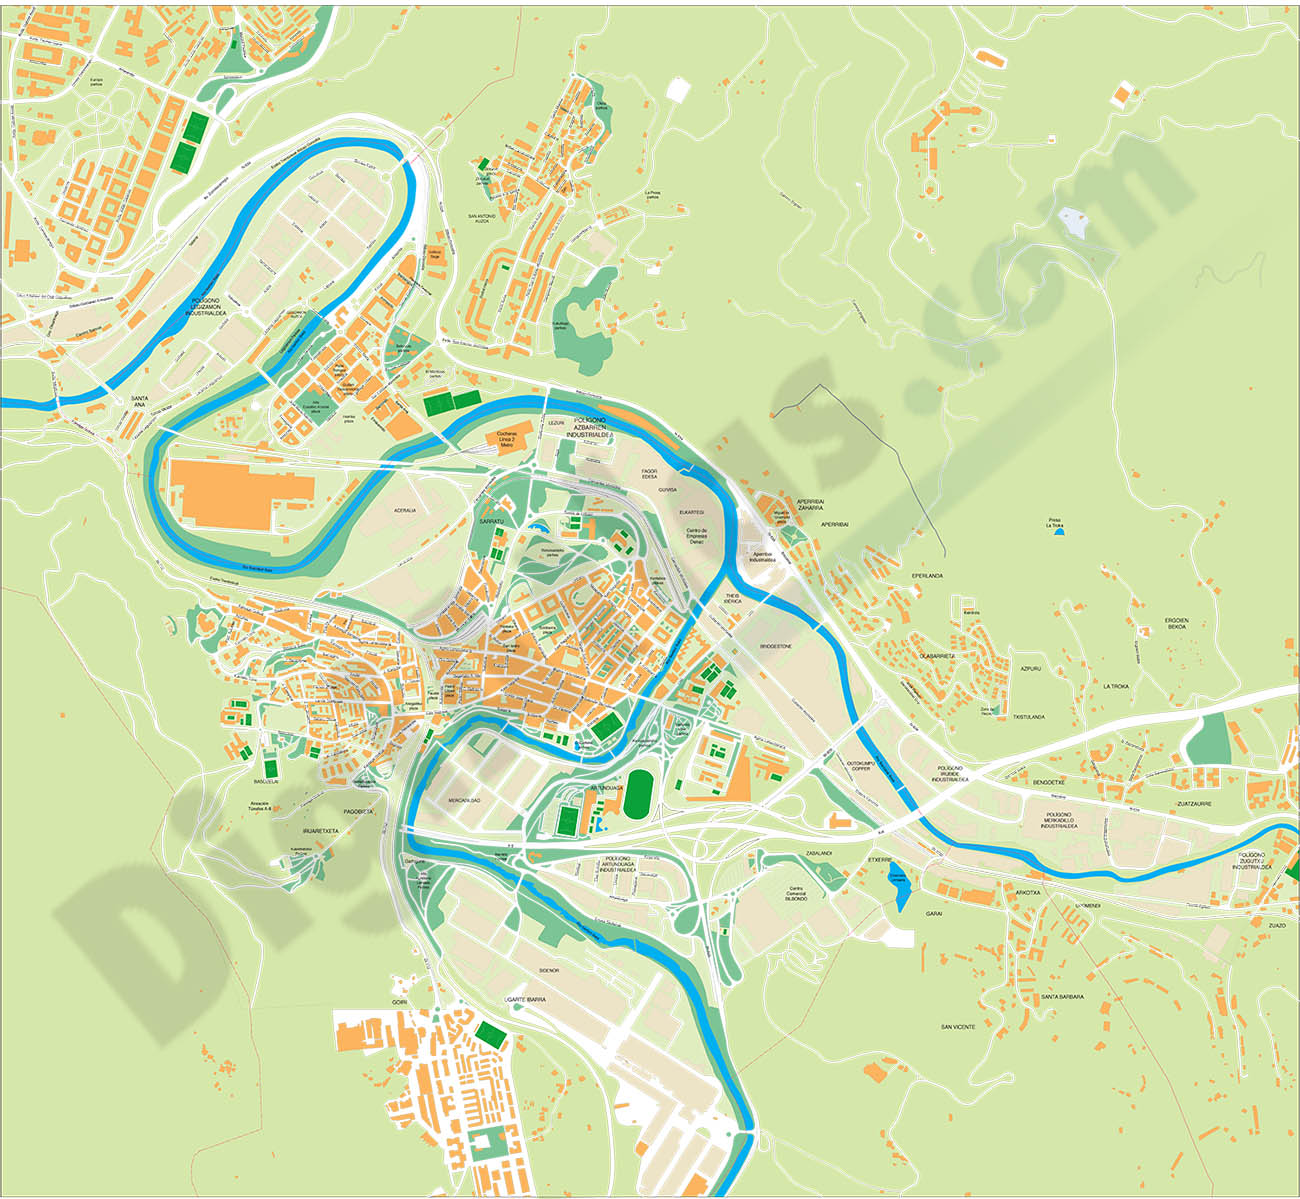 Basauri (Biscay, Basque Country, Spain) - city map